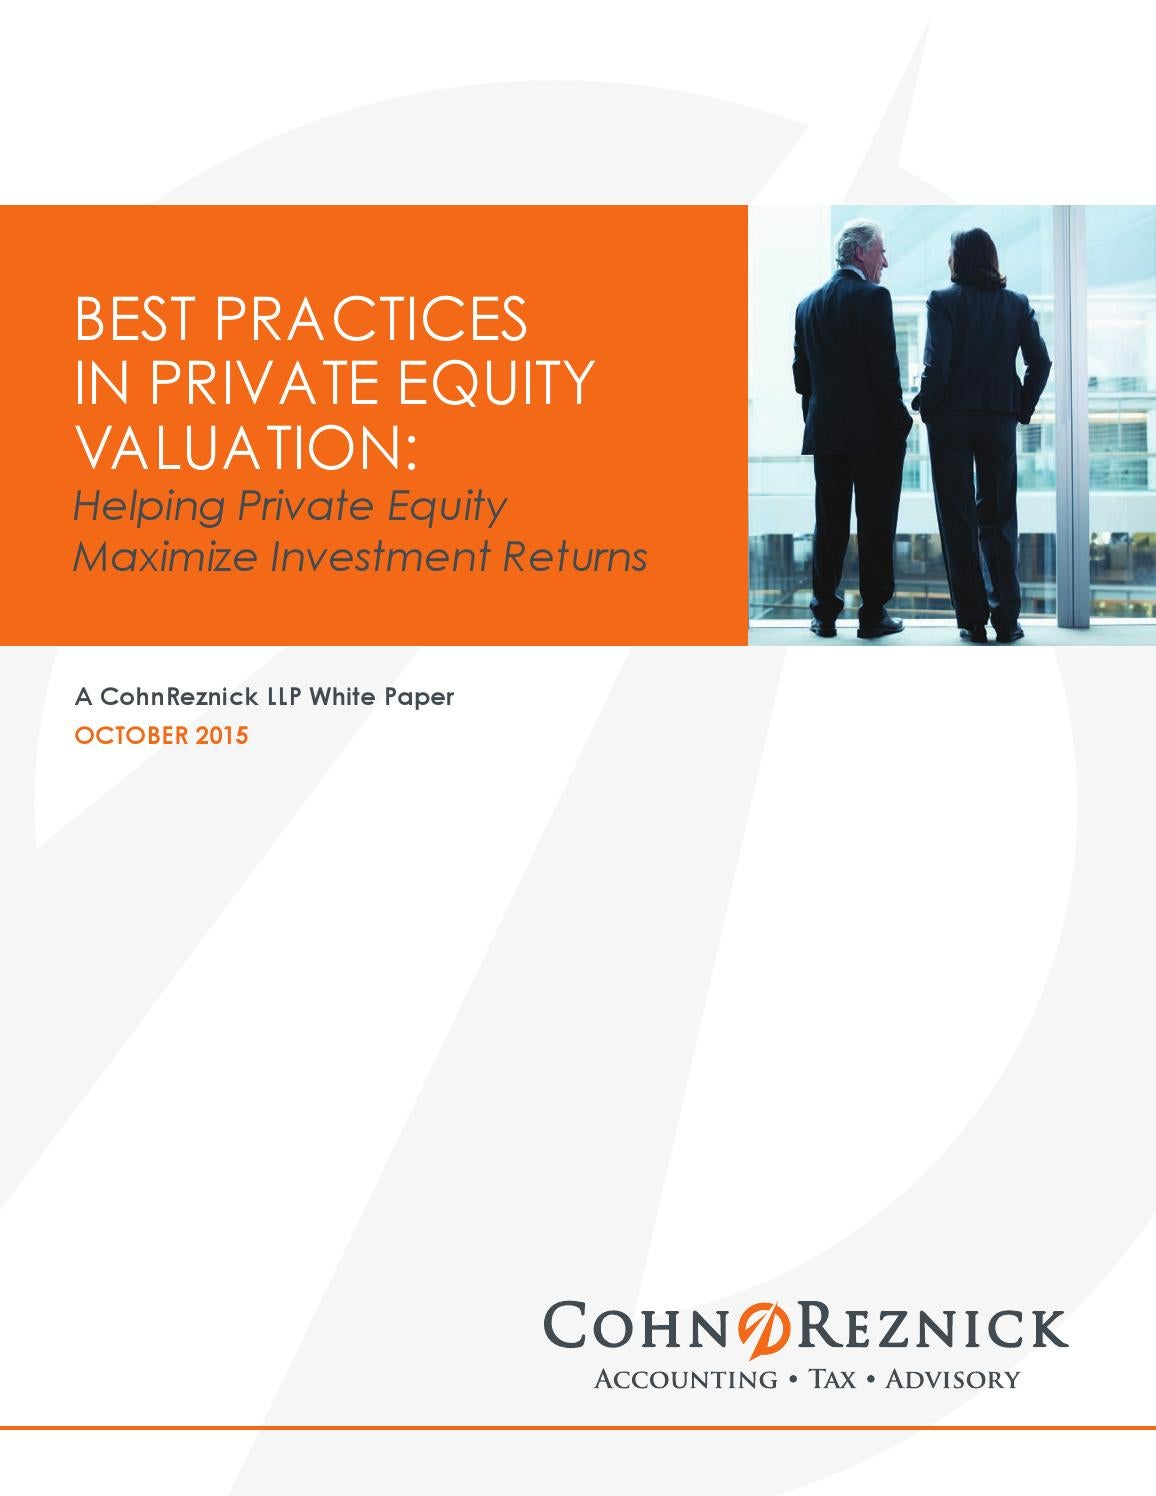 Best Practices In Private Equity Valuation by CohnReznick